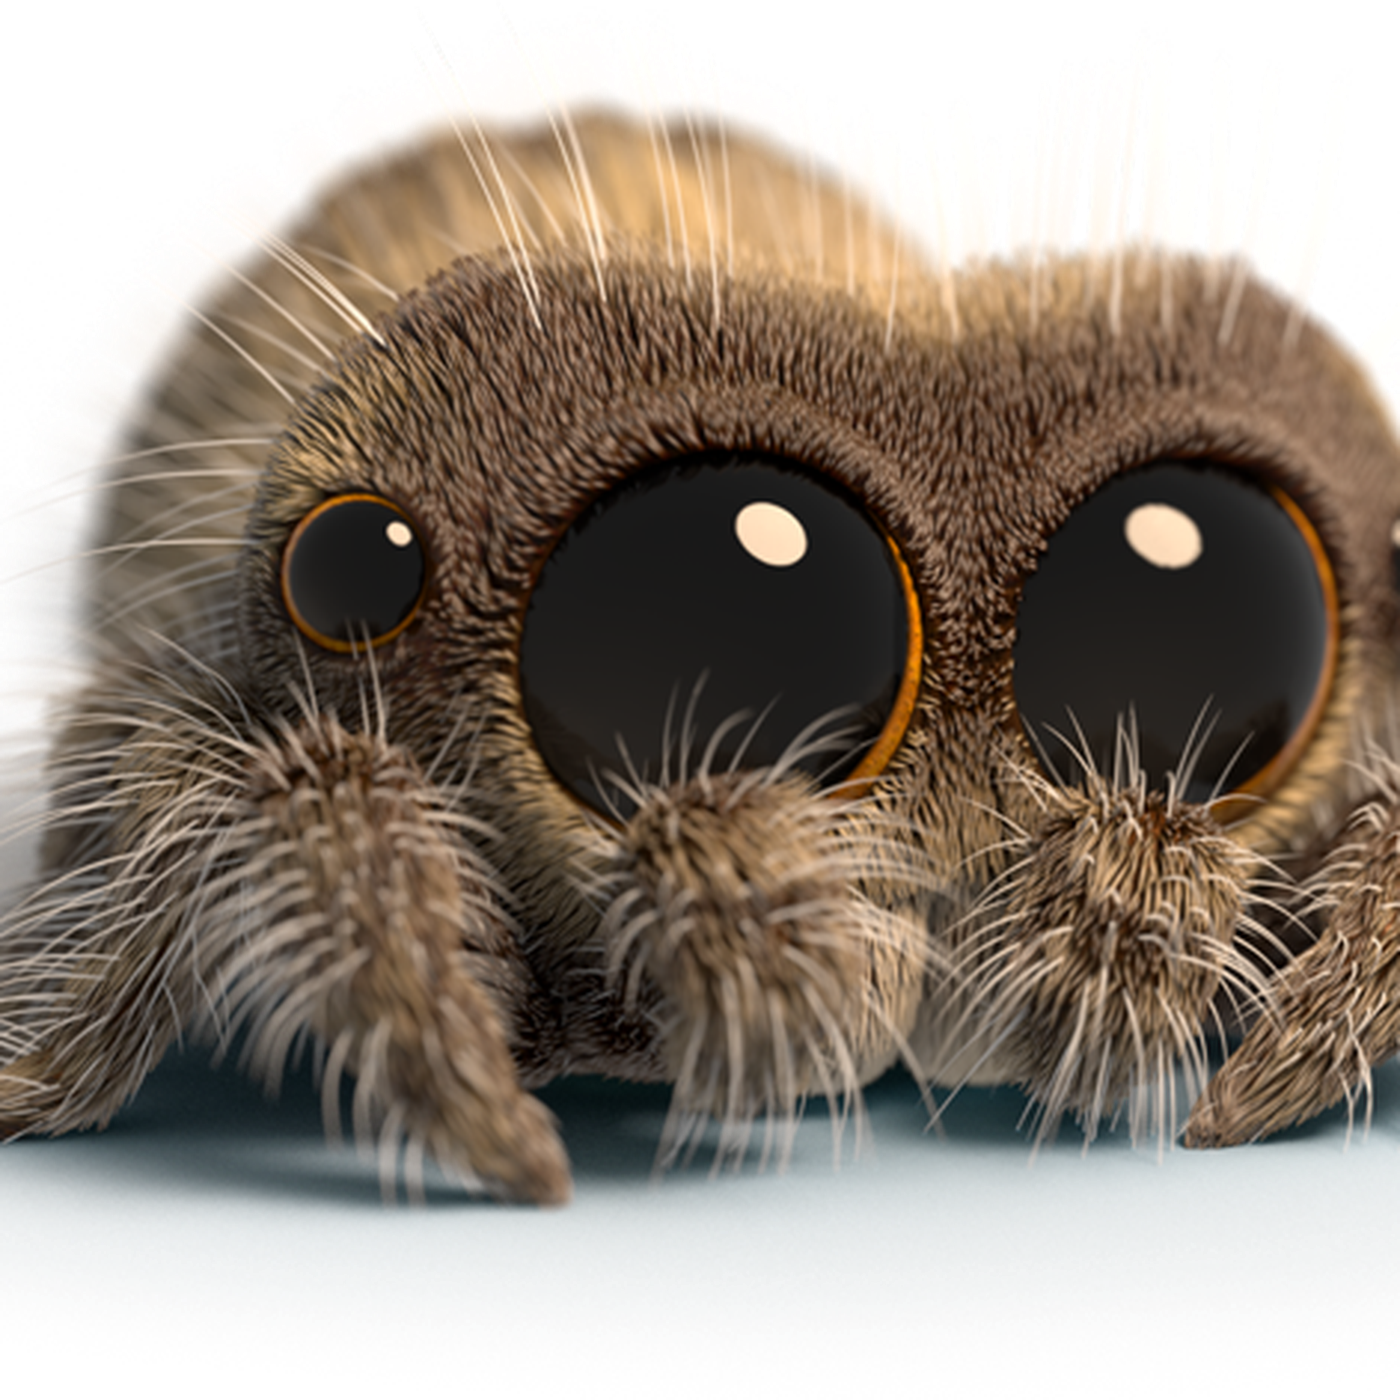 Youtube S Favorite Creature Lucas The Spider Is Getting An